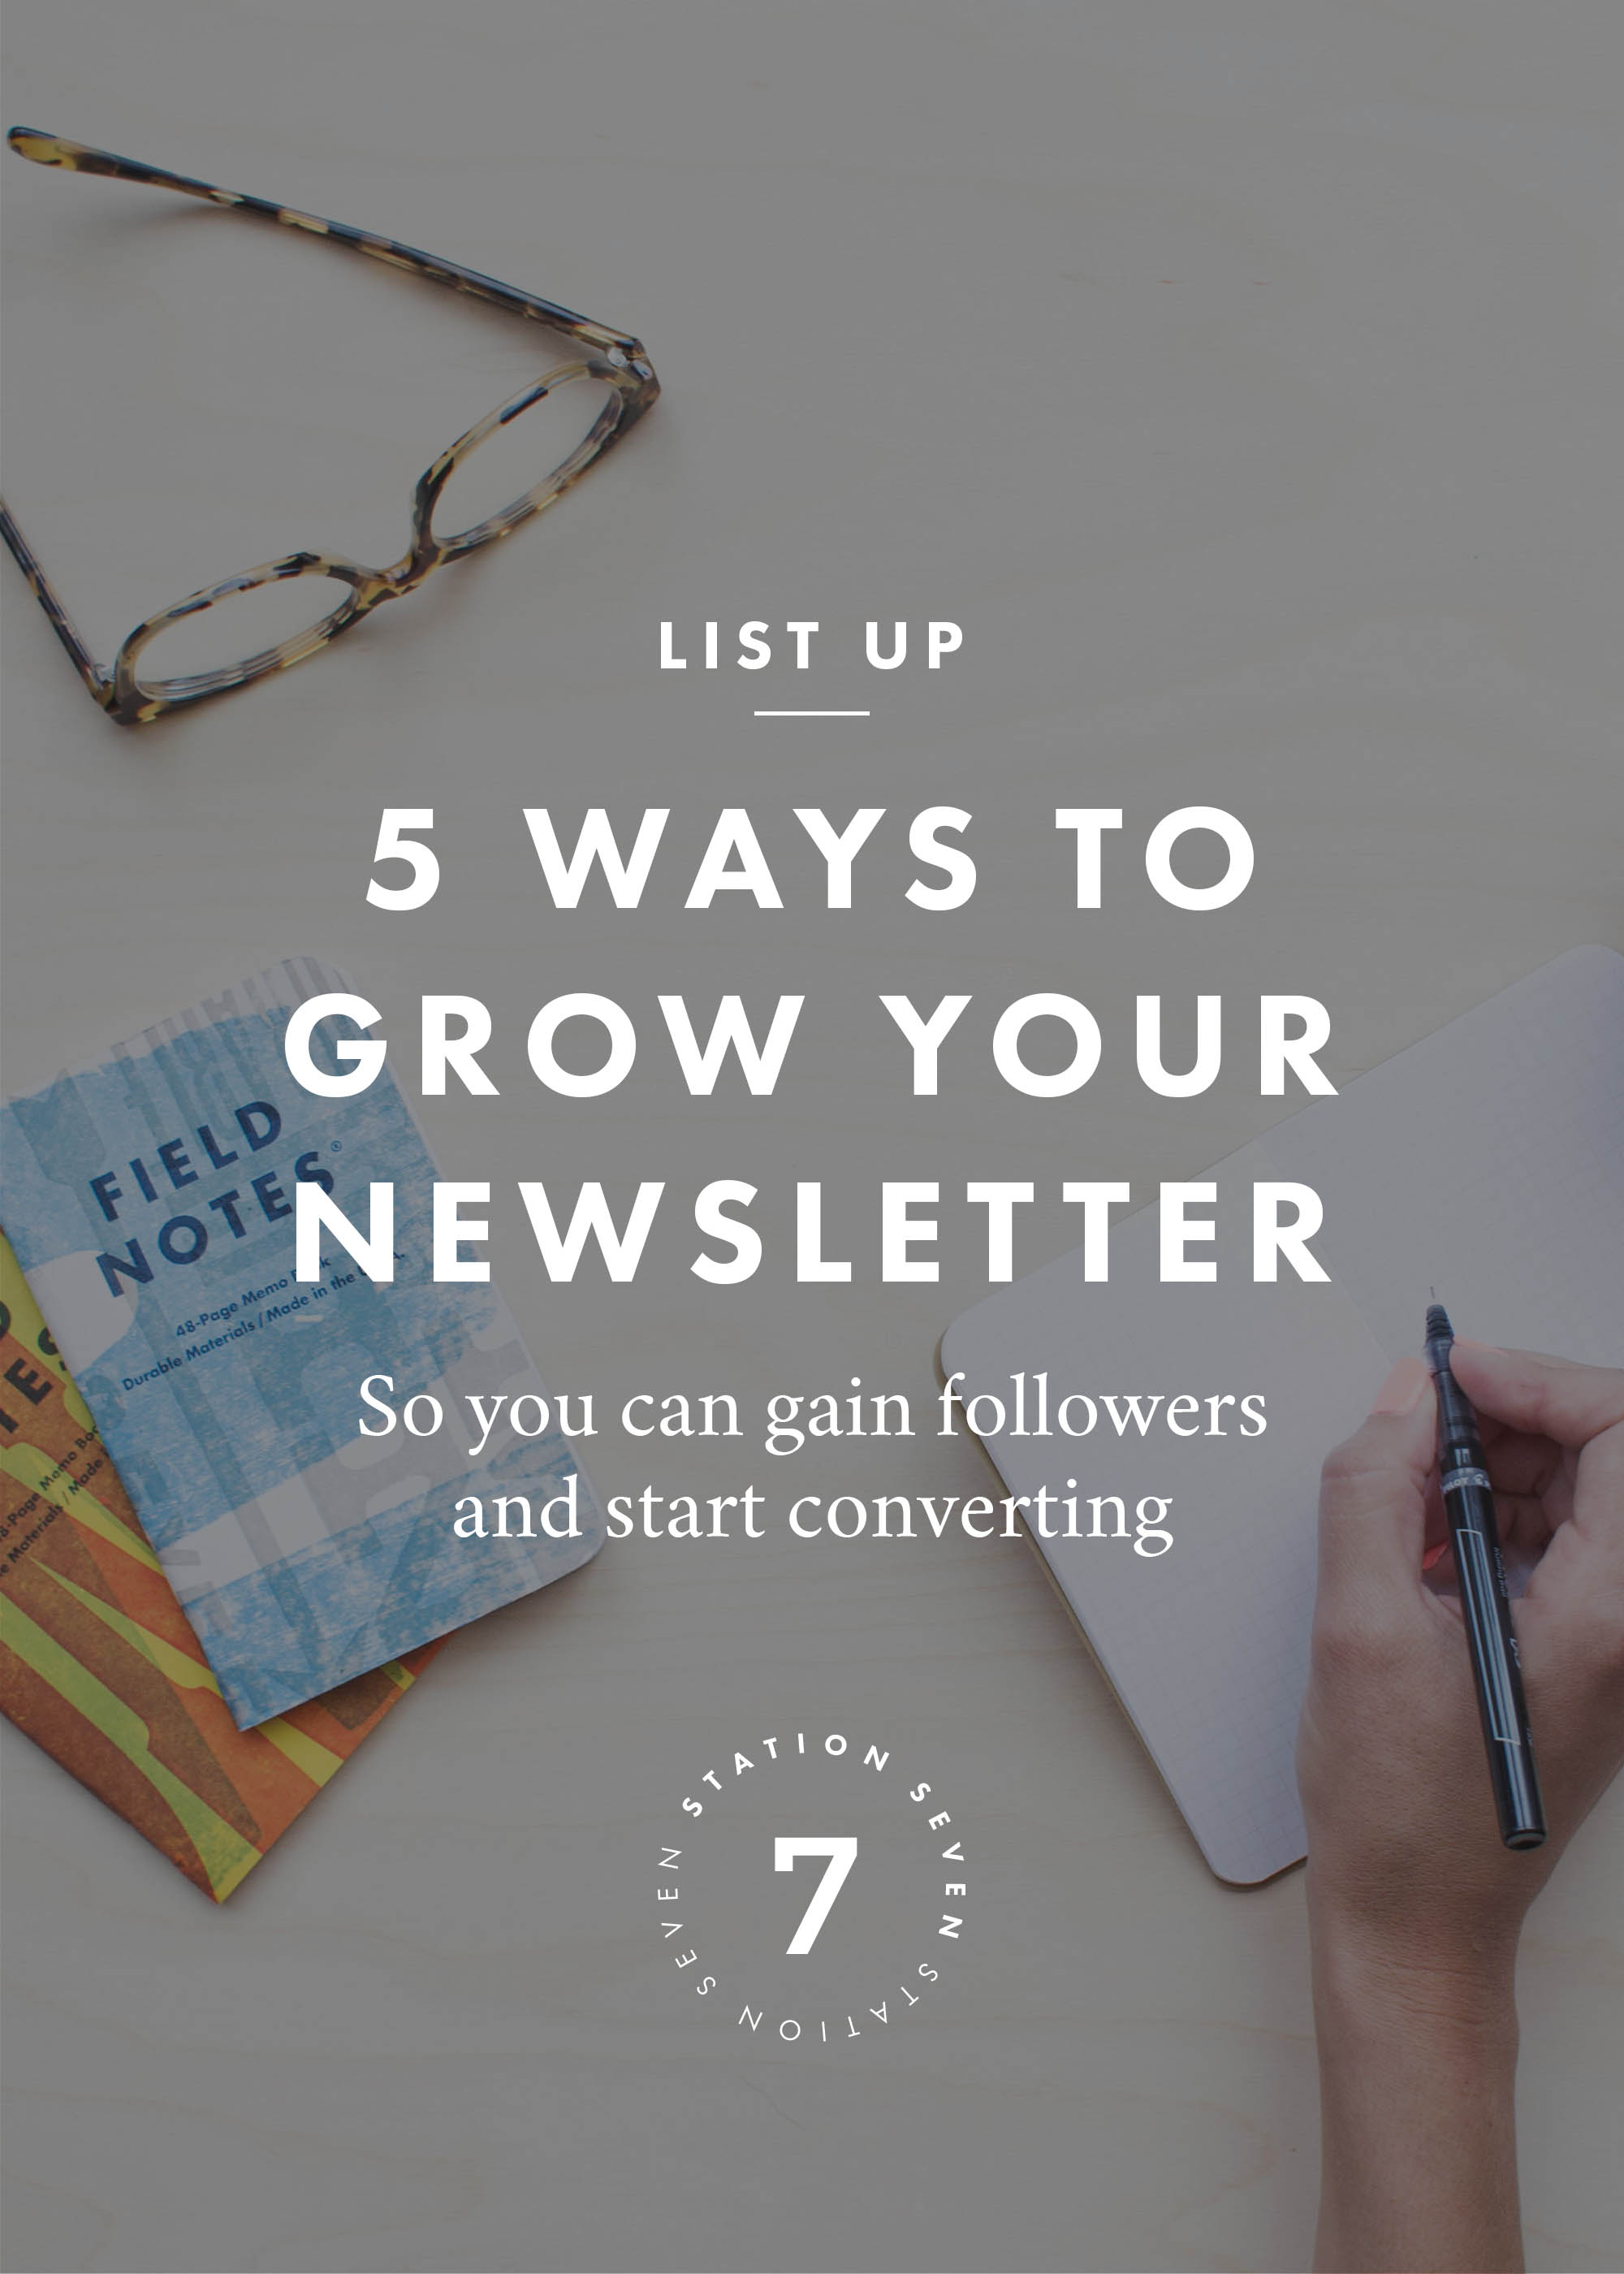 5 Ways to Grow Your Newsletter + Start Converting.jpeg